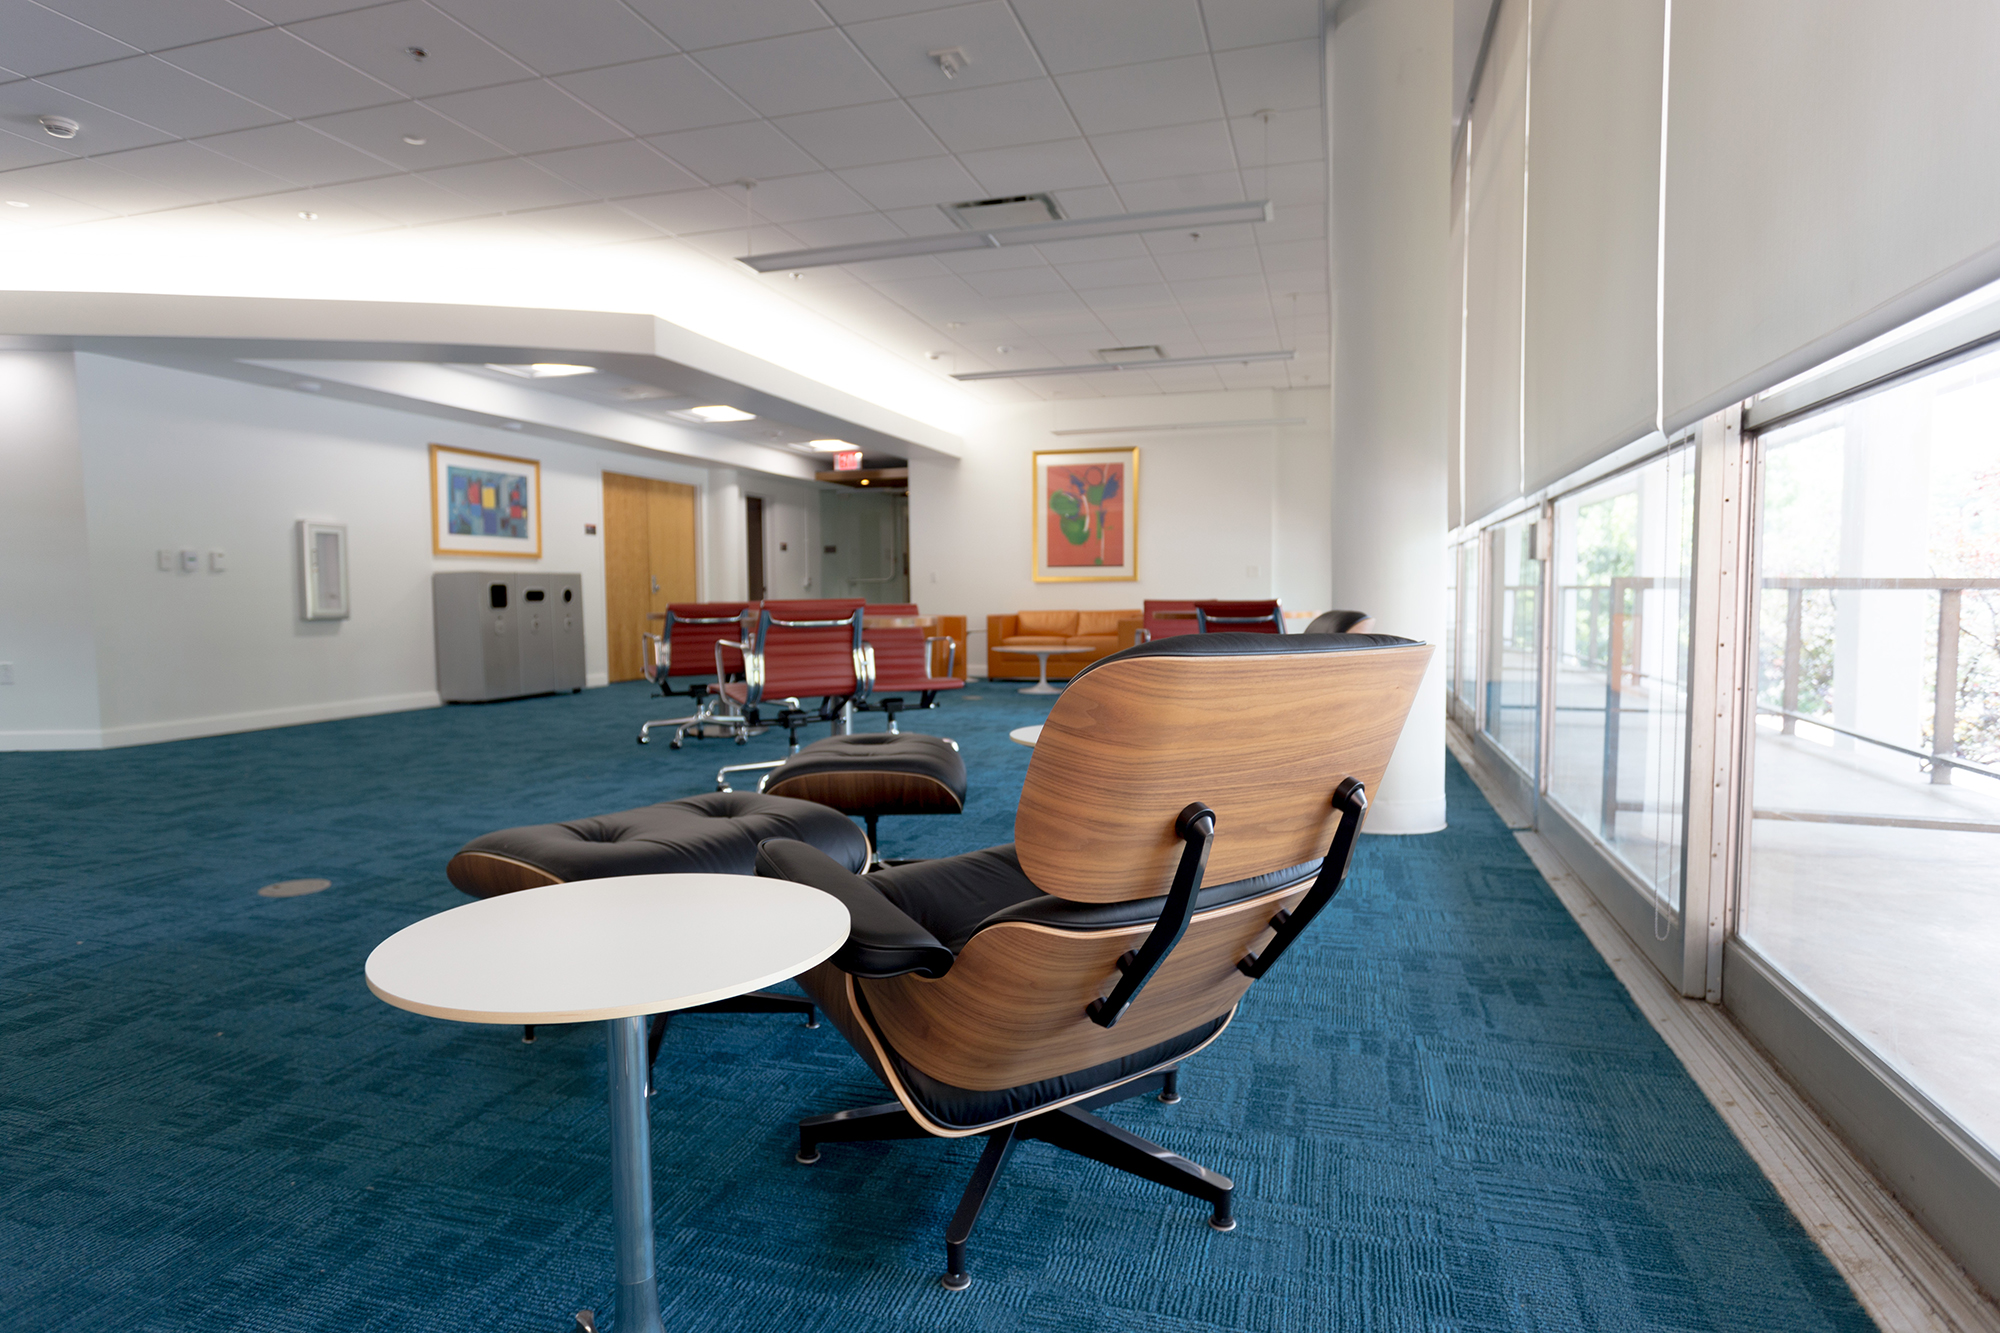 Chairs and tables in the faculty research commons